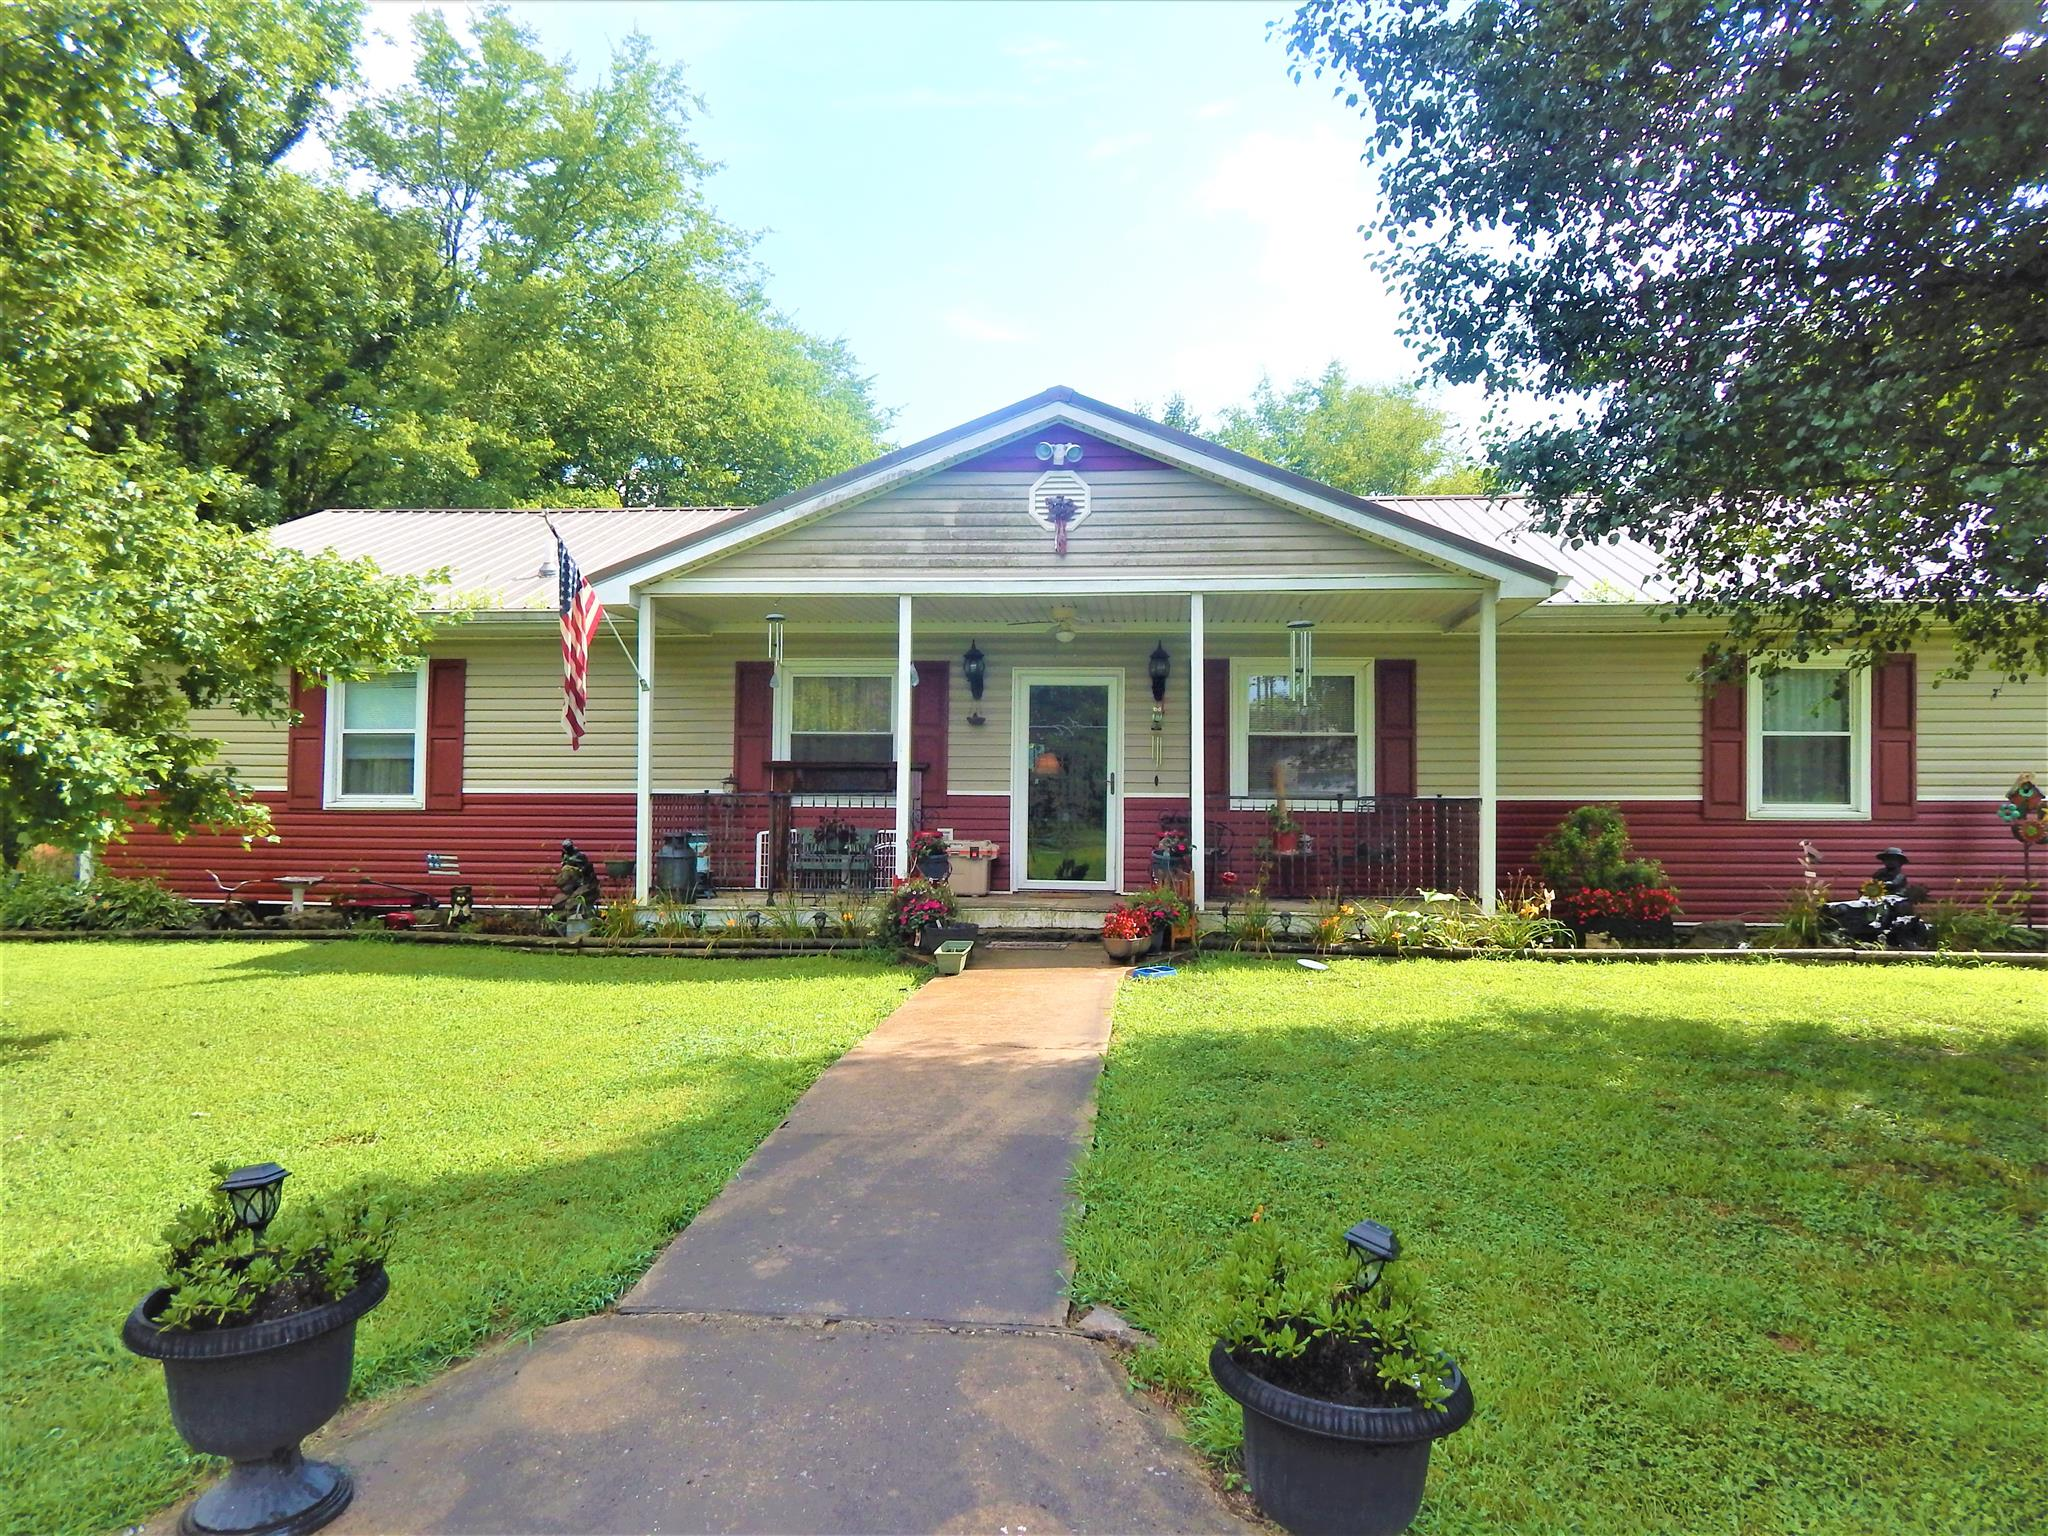 184 Wabash Rd, Mulberry, TN 37359 - Mulberry, TN real estate listing